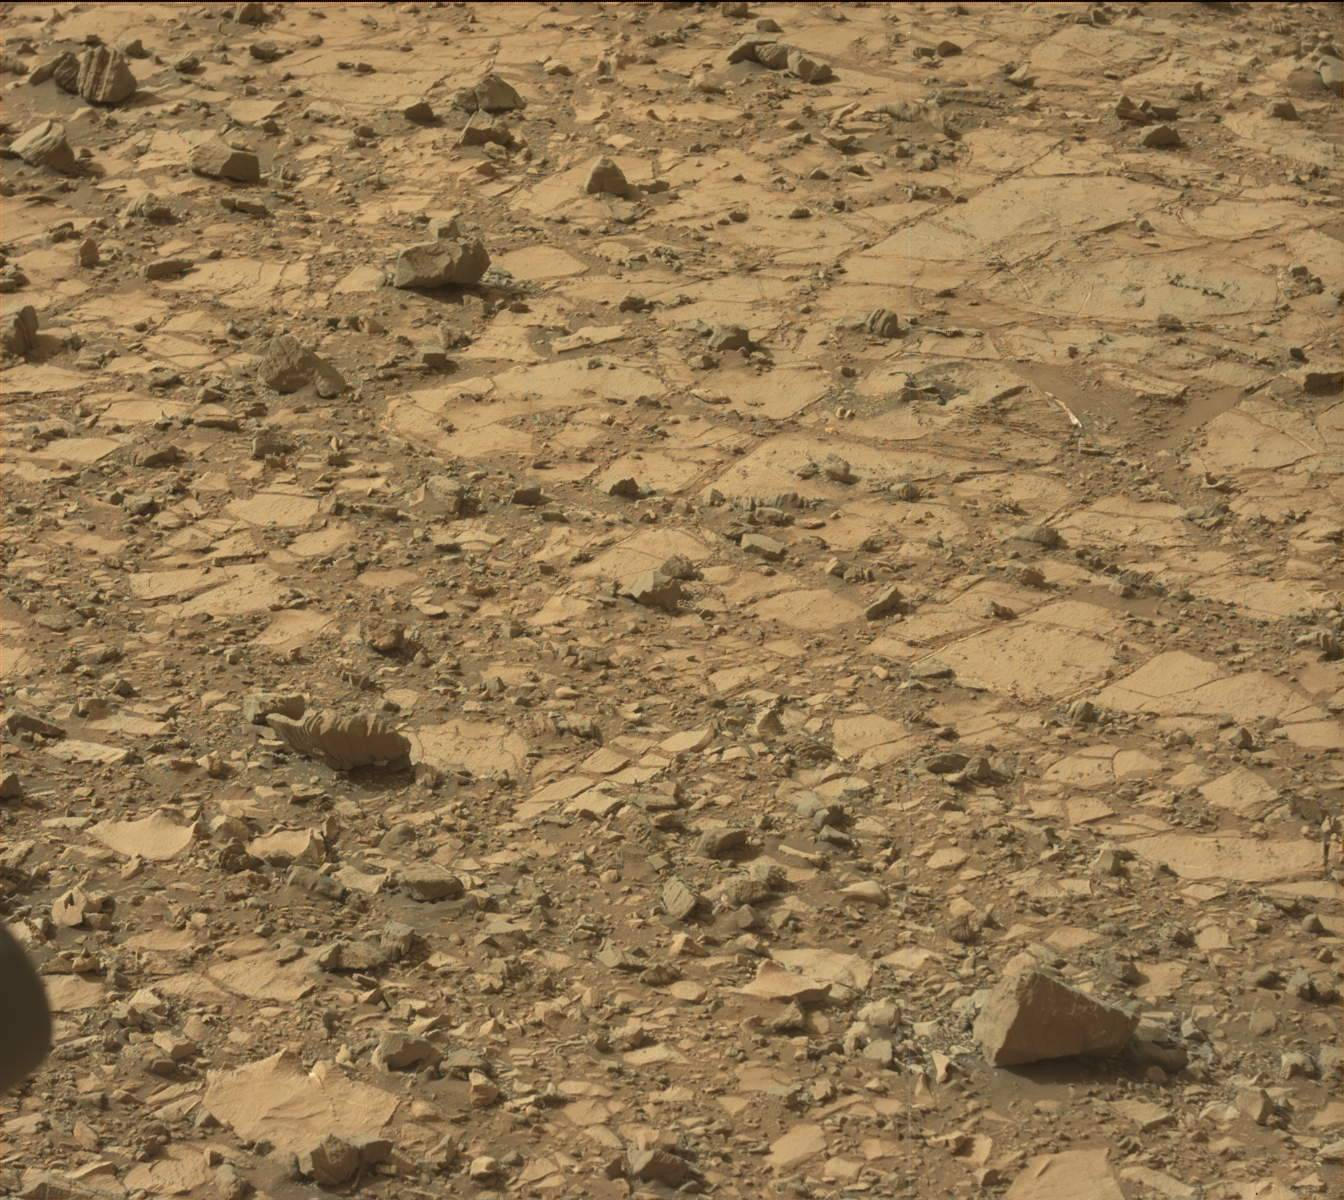 mars rovers destroyed - photo #2